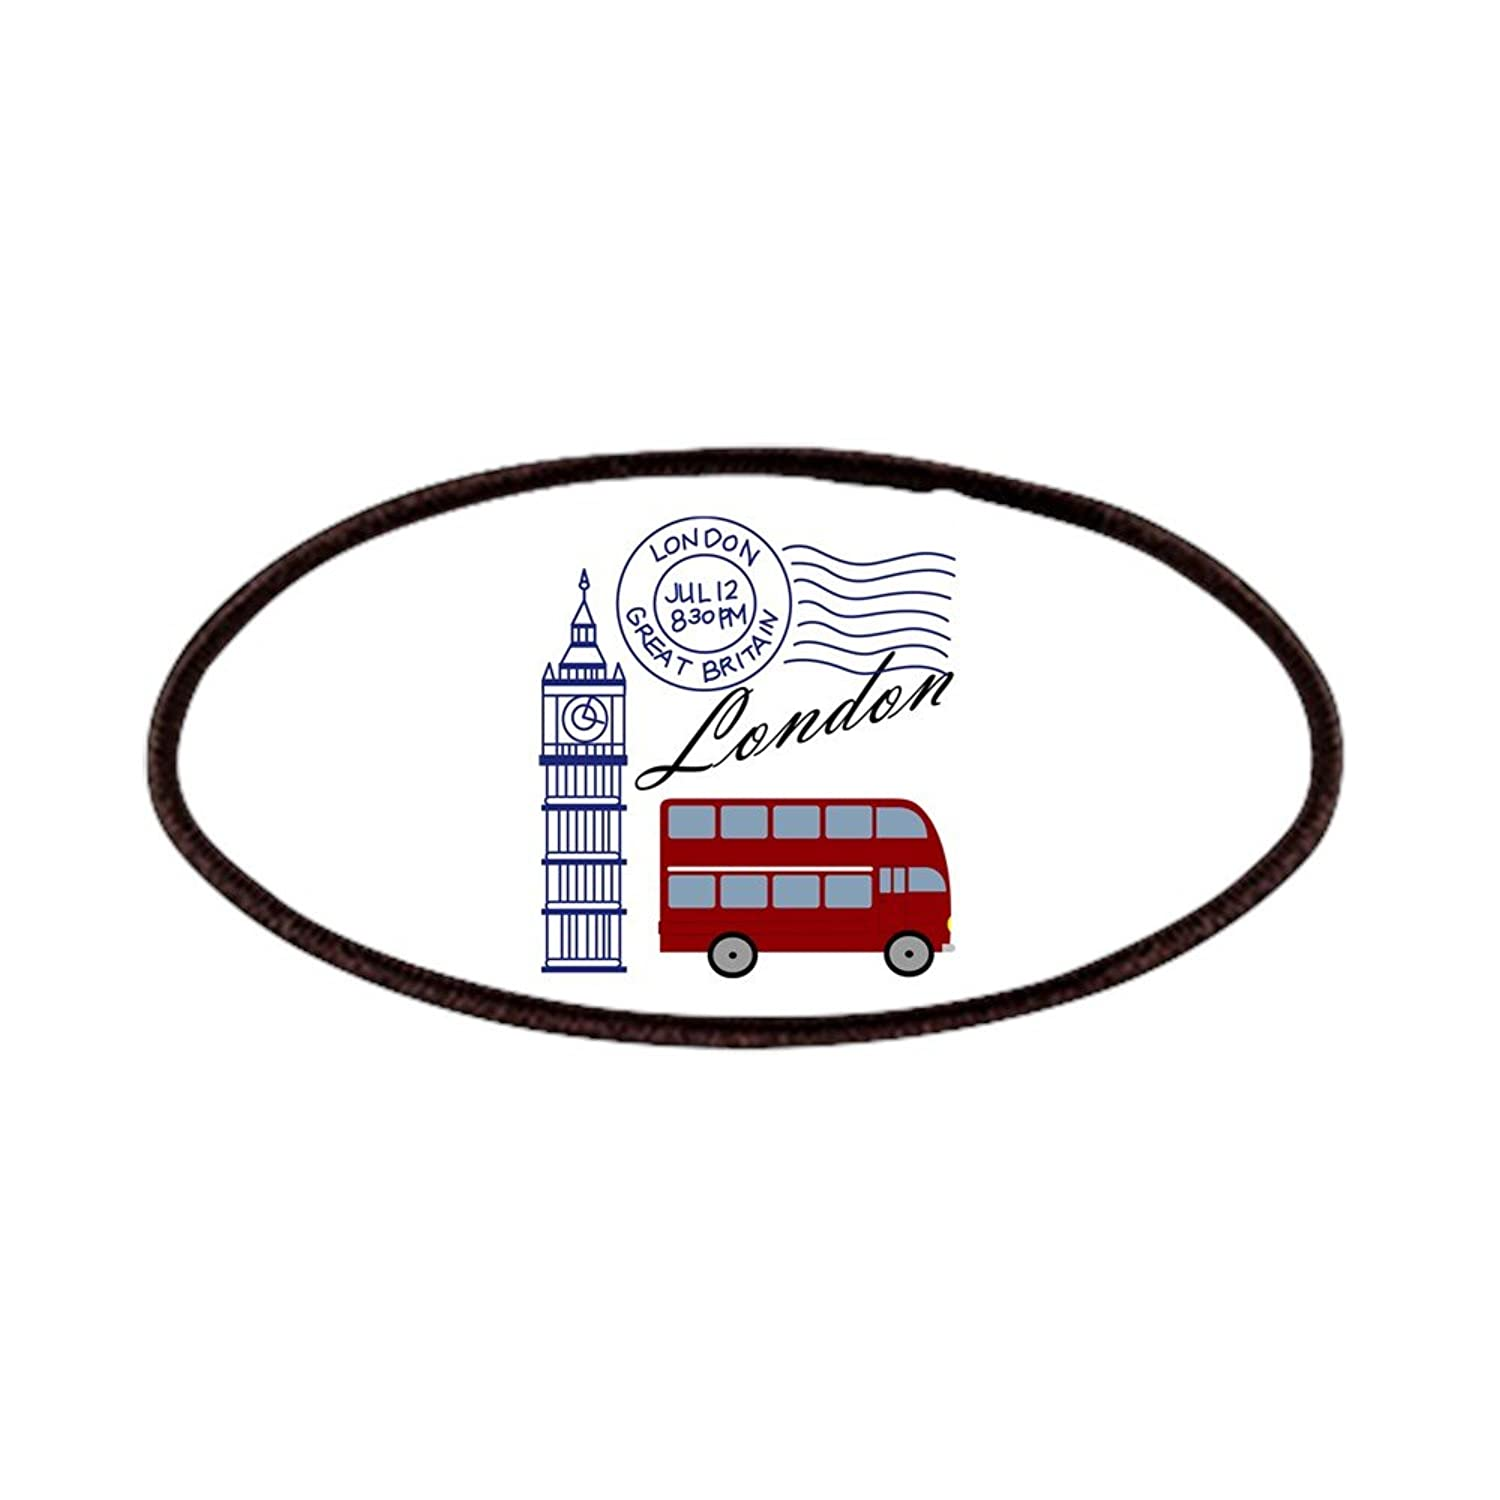 Amazon.com: CafePress - London - Patch, 4x2in Printed Novelty Applique Patch: Clothing